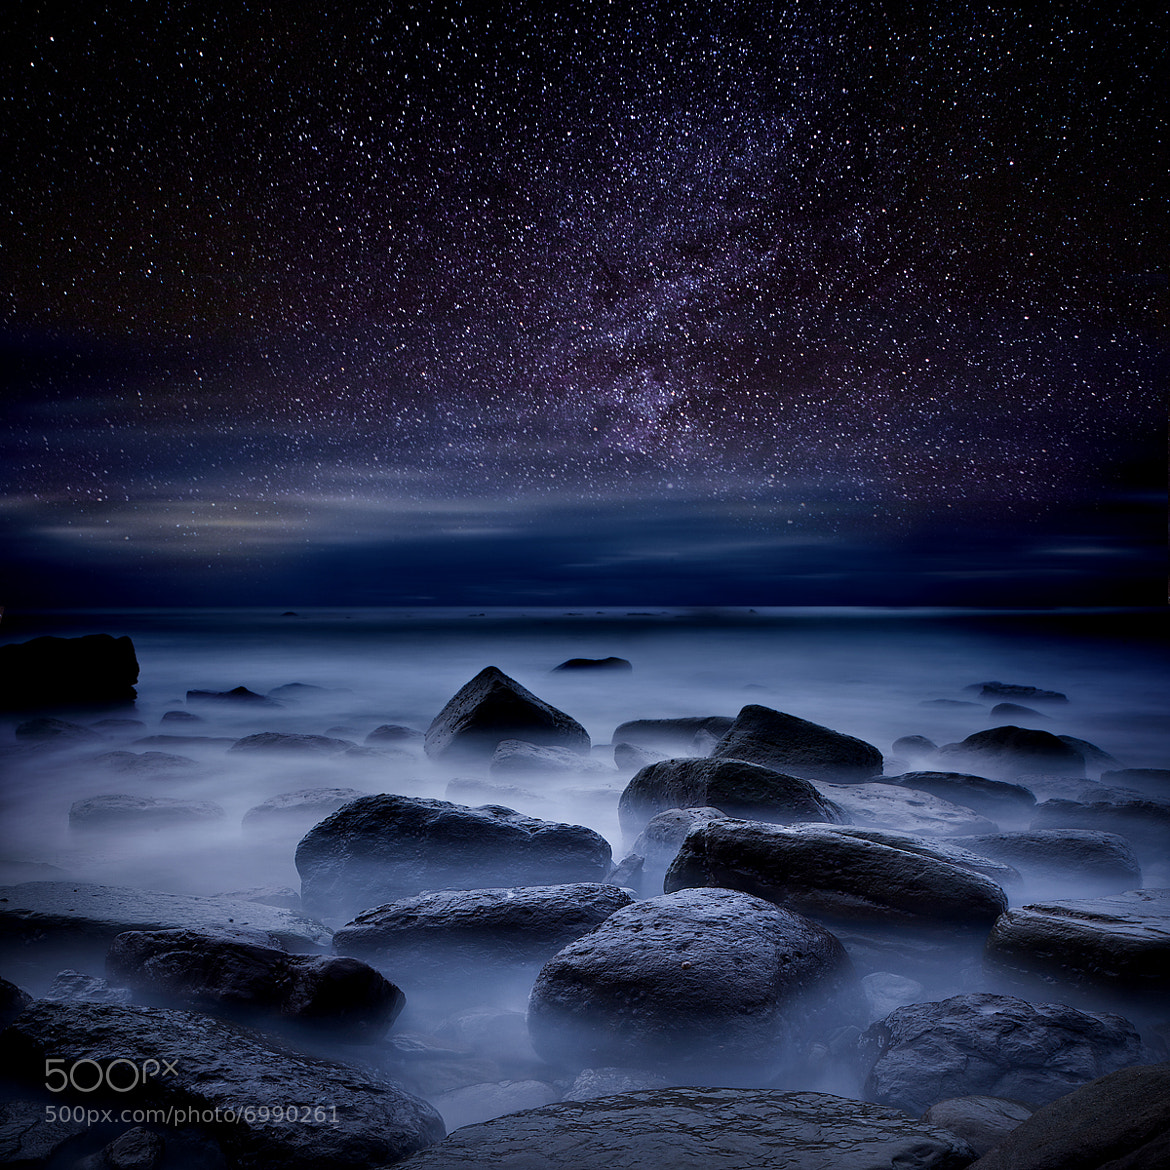 Photograph Where dreams begin by Jorge Maia on 500px